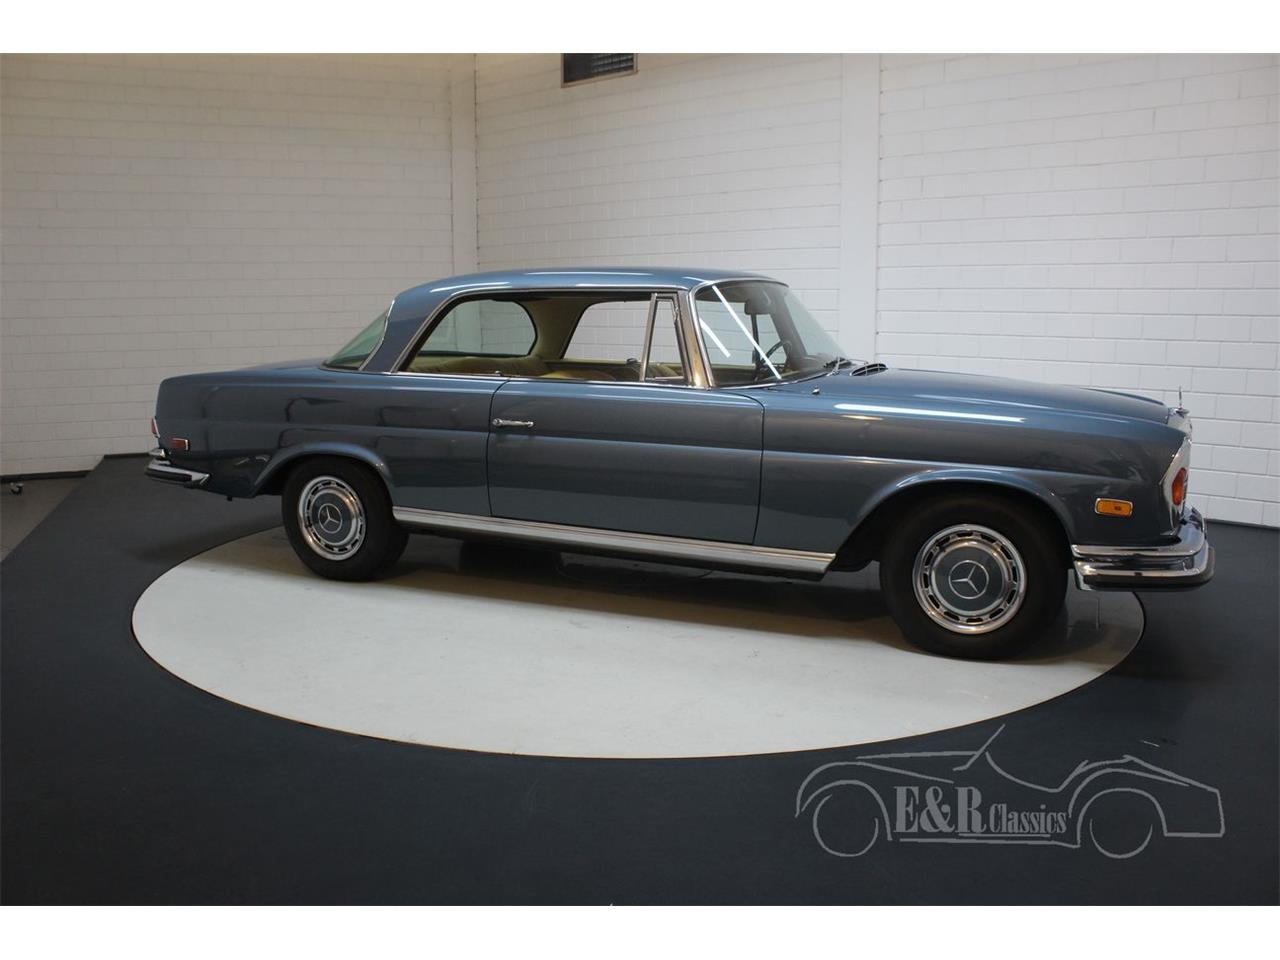 Large Picture of Classic 1971 Mercedes-Benz 280SE located in Noord-Brabant - $113,800.00 - QEBY